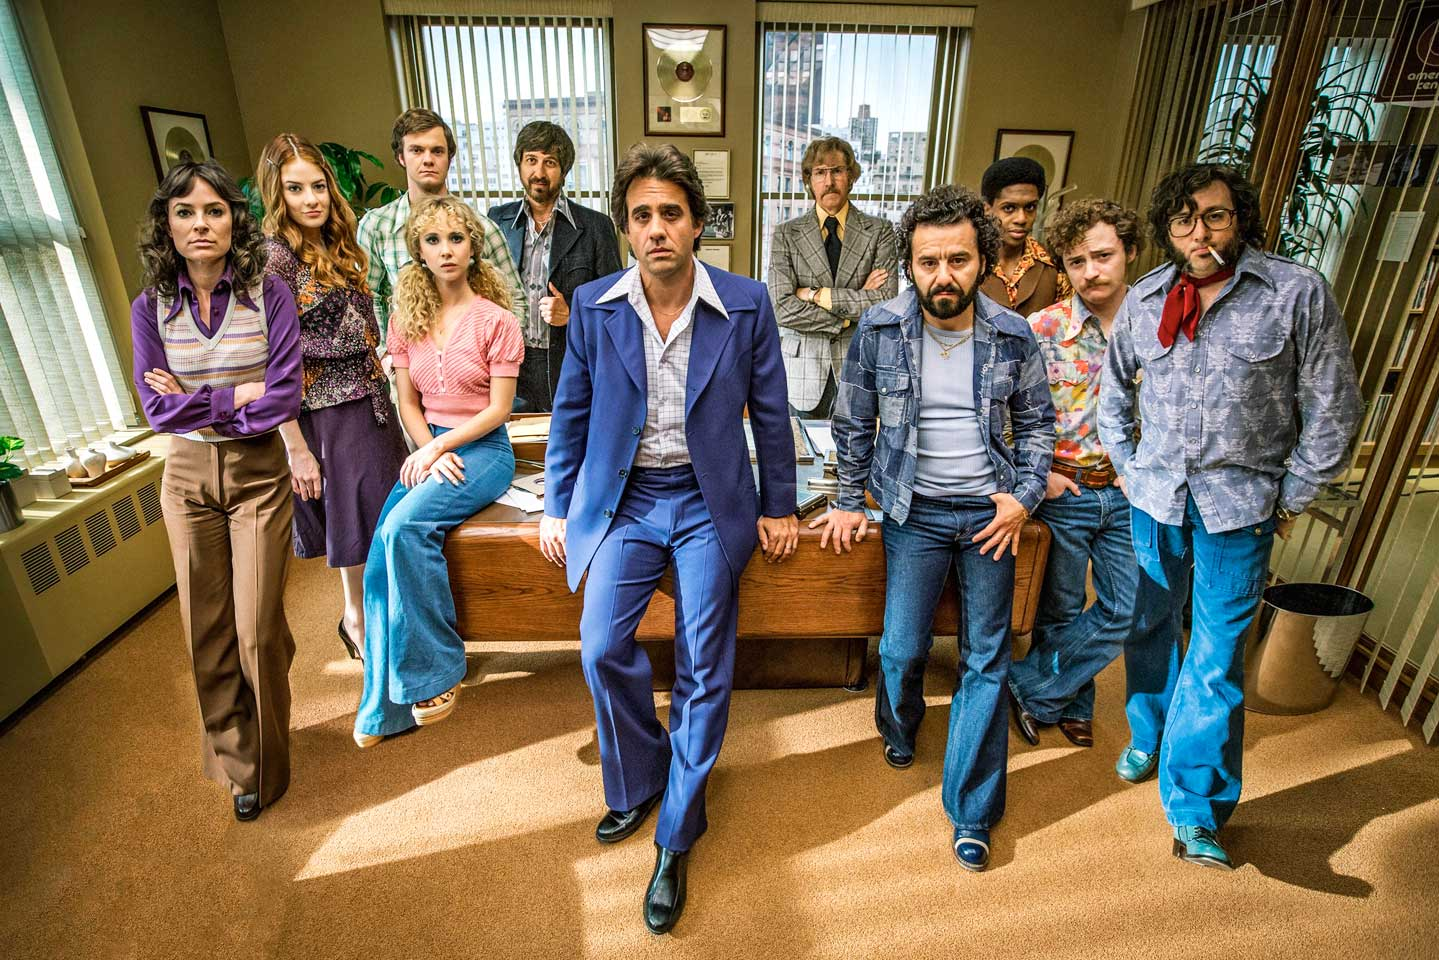 Jagger and Scorsese seek rock's holy grail in HBO drama Vinyl